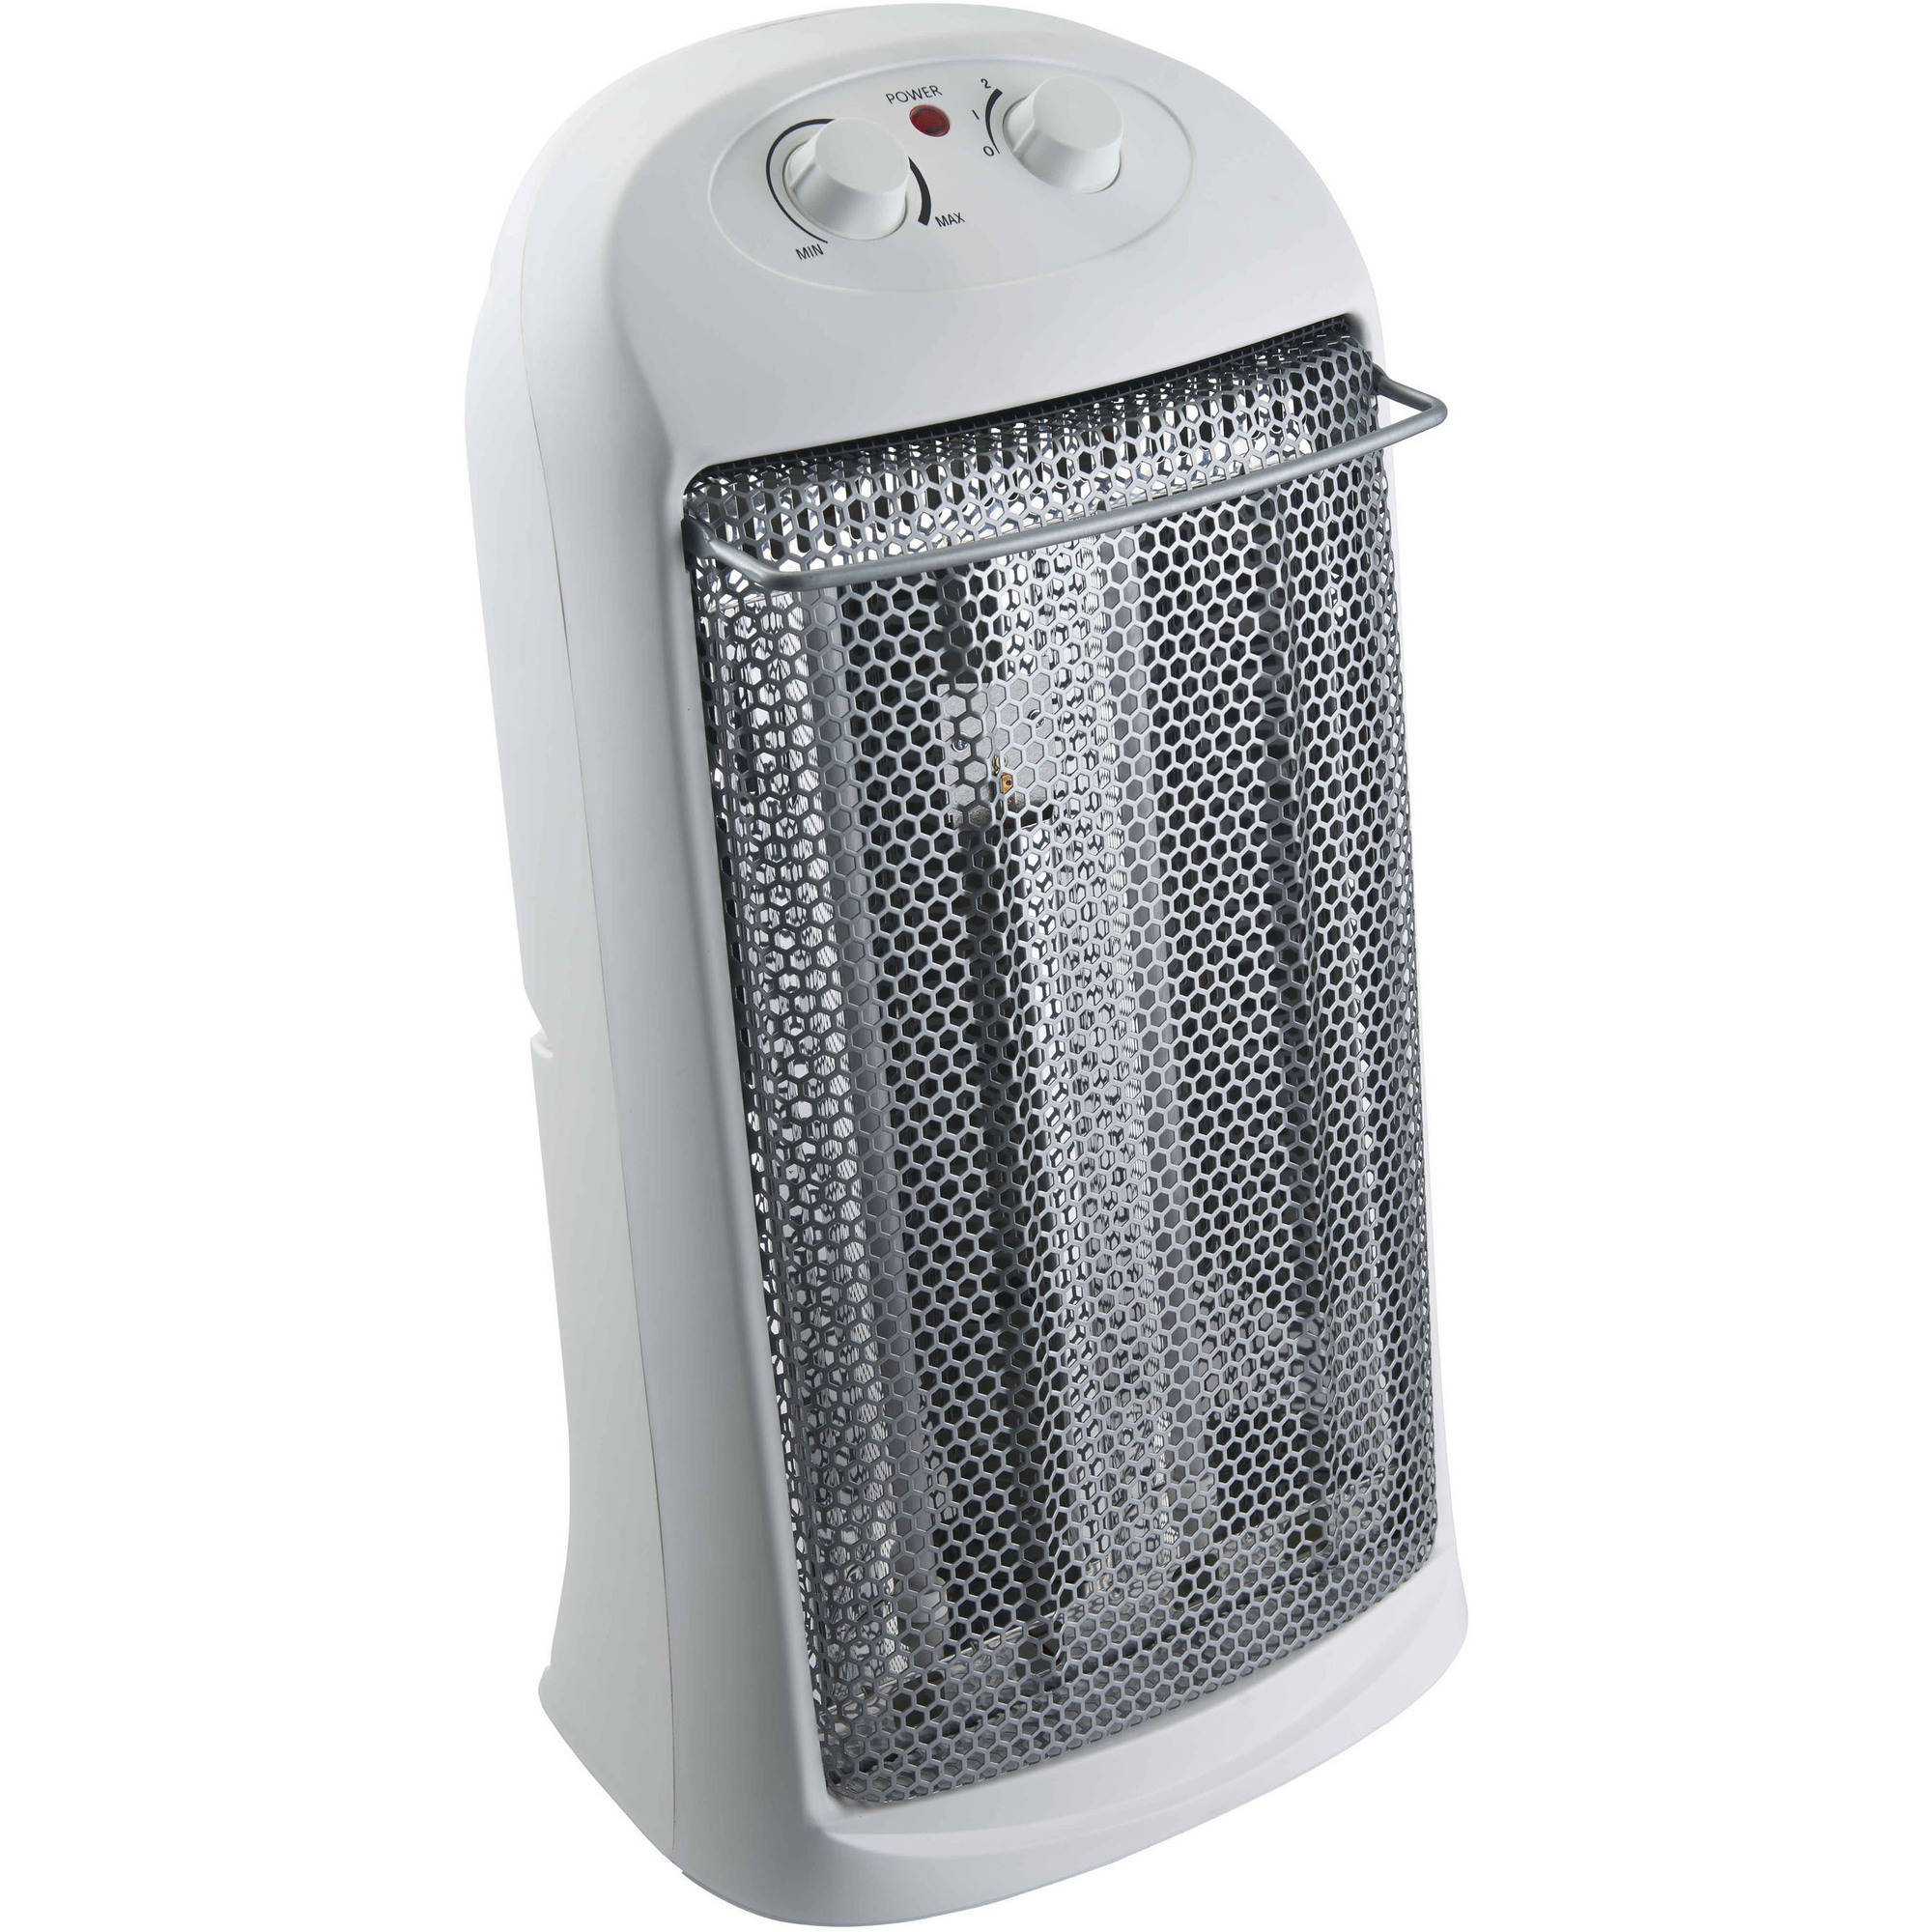 Mainstays Electric Quartz Heater with Thermostat, White, HQ-1000